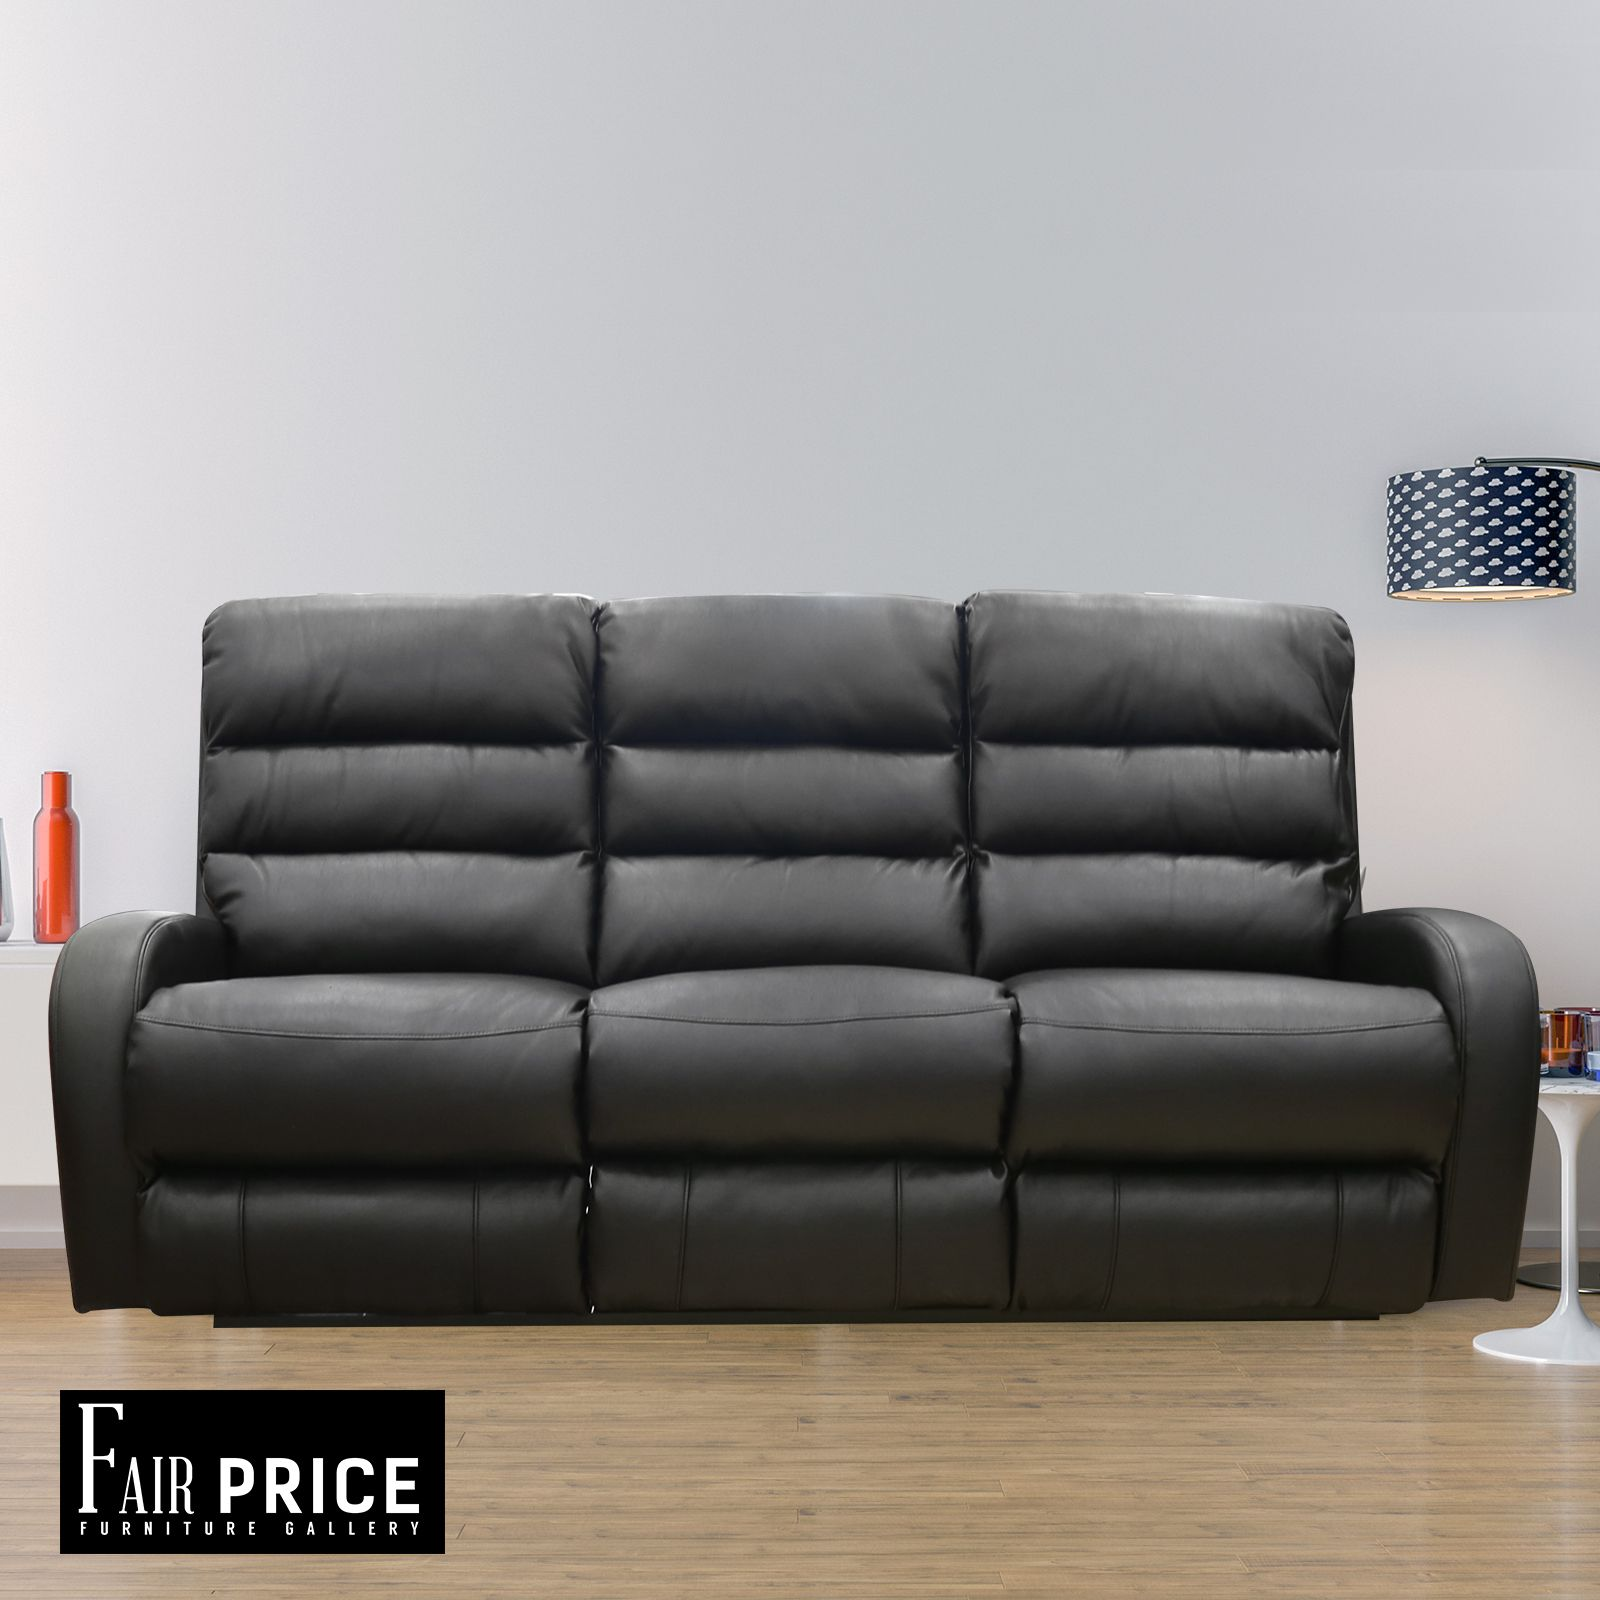 New Luxury 3 Seater Leather Air Justin Recliner Sofa Couch Lounge Suite,  Black